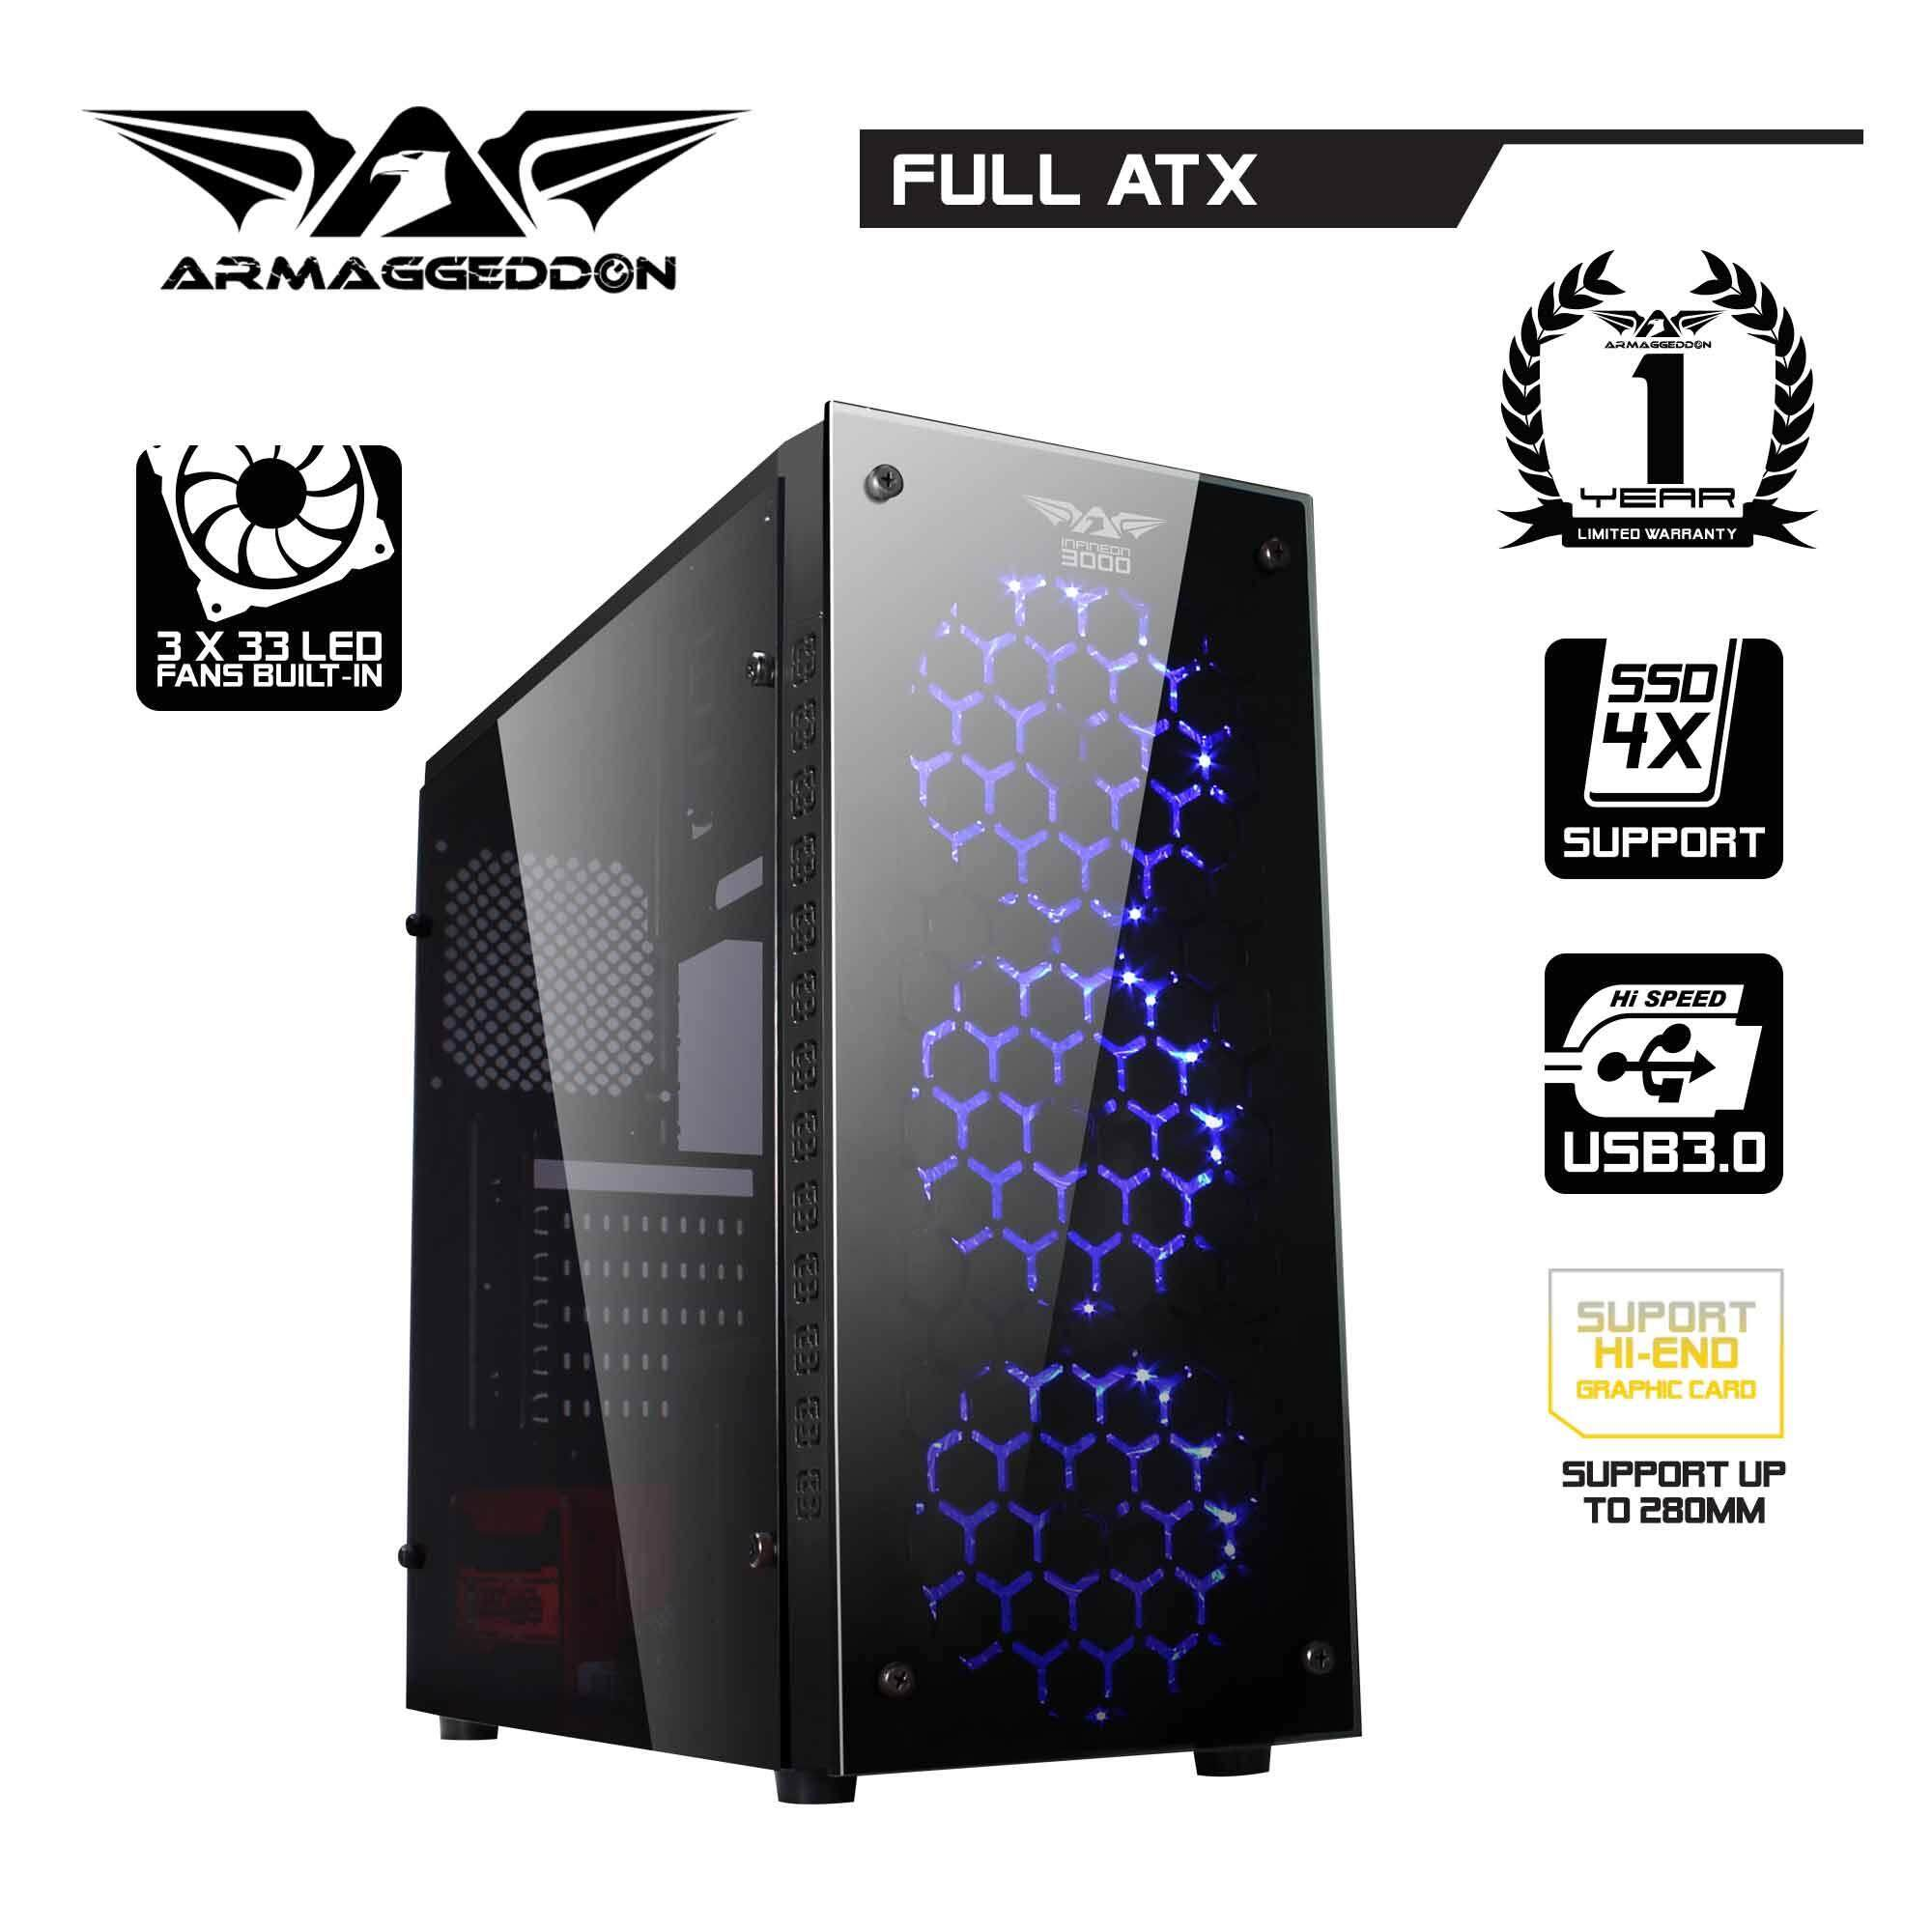 (12.12) Armaggeddon Infineon 3000 ATX Gaming Tower (Full View Transparent Side Panel Design) Malaysia